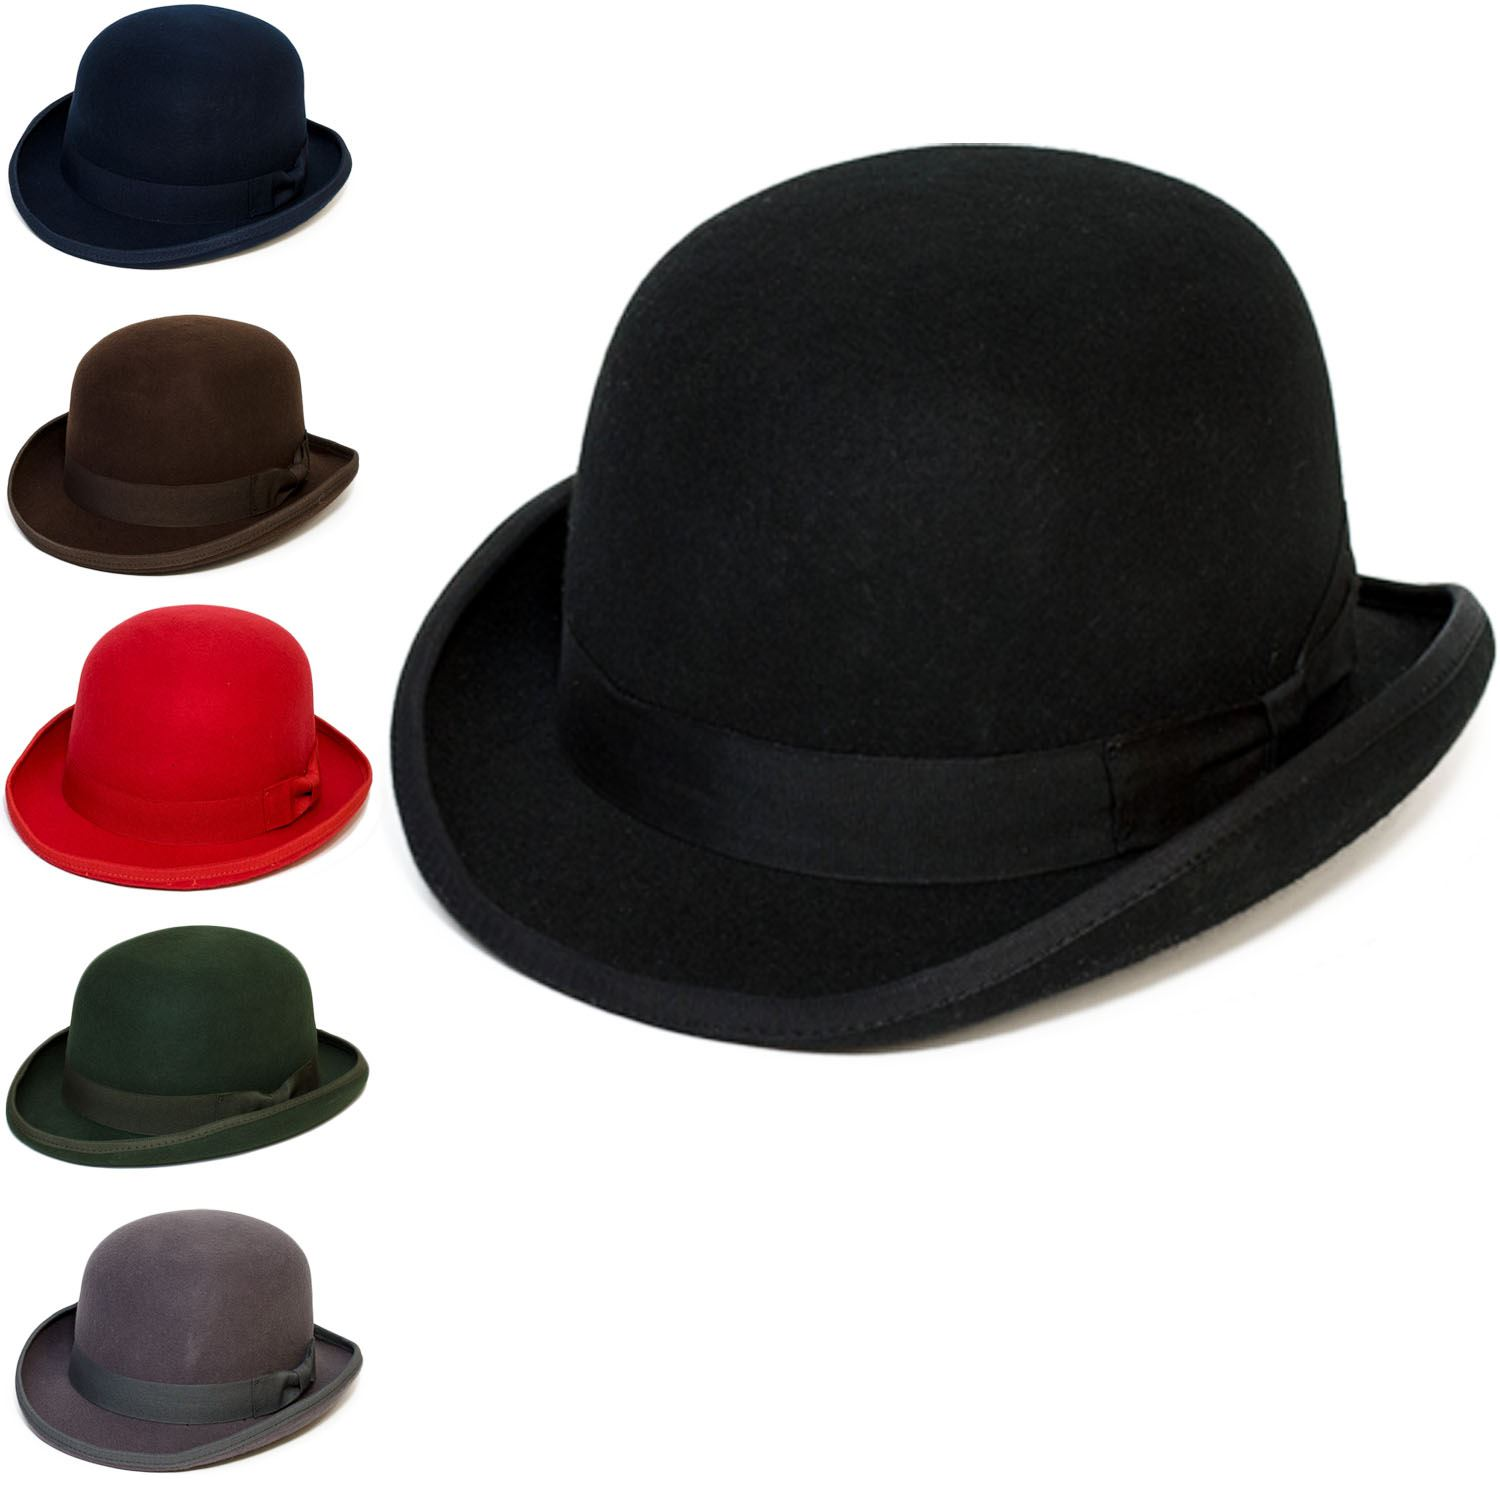 Is The Bowler Hat Making A Comeback? The Read The Journal 61